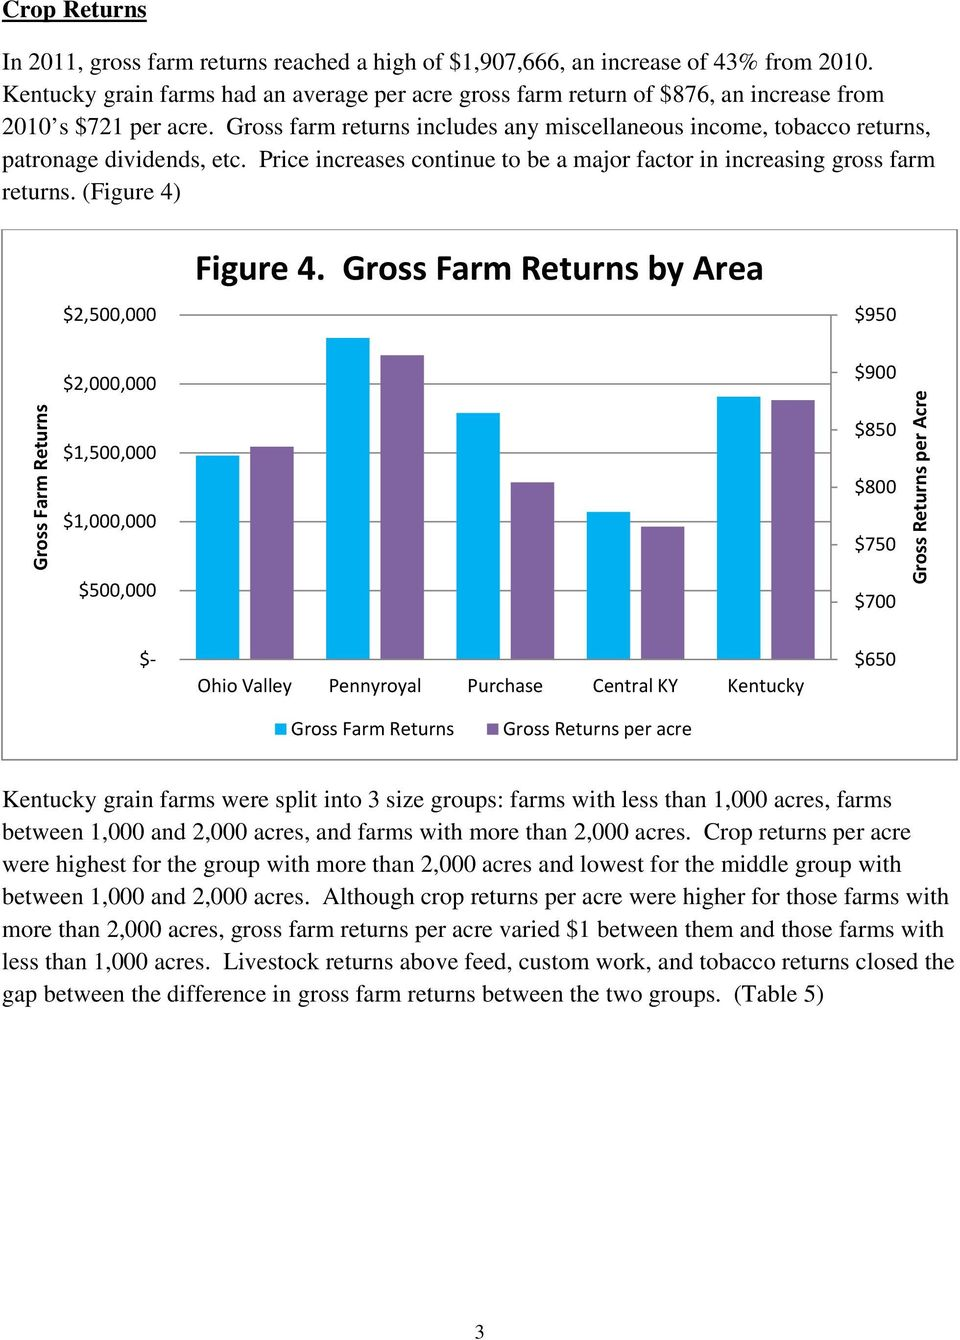 Gross farm returns includes any miscellaneous income, tobacco returns, patronage dividends, etc. Price increases continue to be a major factor in increasing gross farm returns.